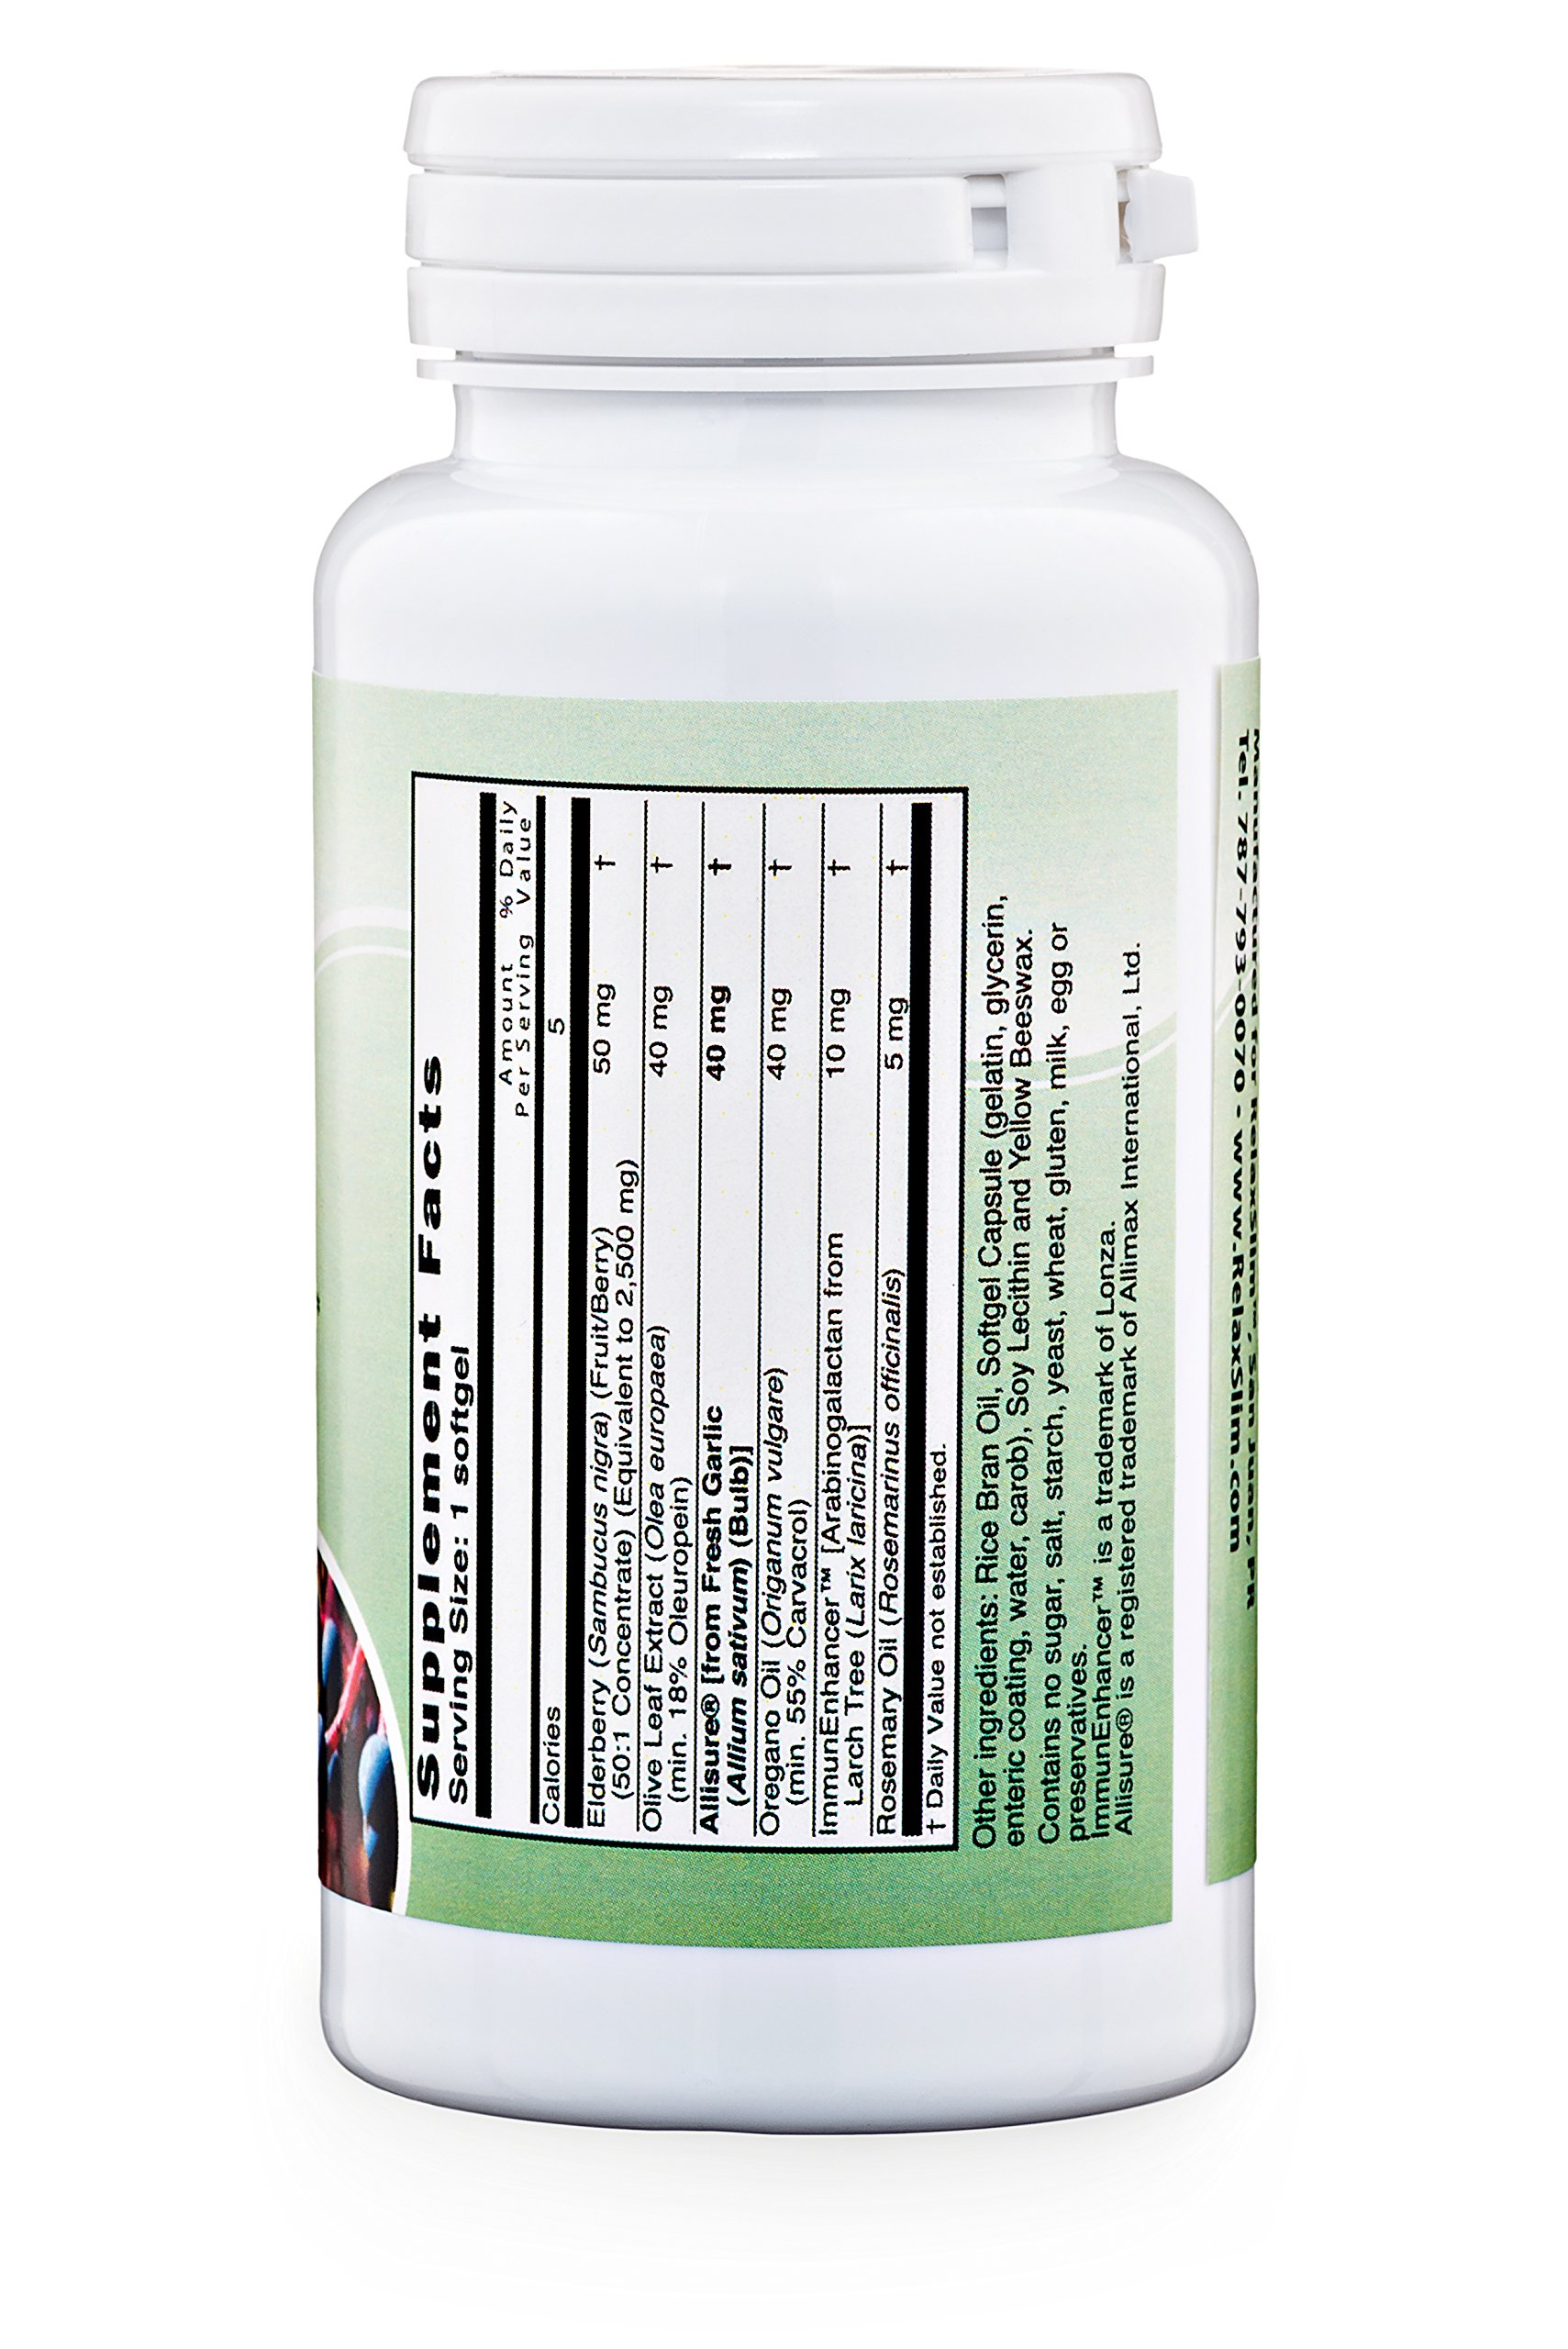 RelaxSlim Candida Albicans Treatment, Formulated by Award Winning Metabolism and Weight Loss Specialist- Full Detox and Cleanse of Fungus for Health and Weight Loss Aid by RelaxSlim  (Image #12)